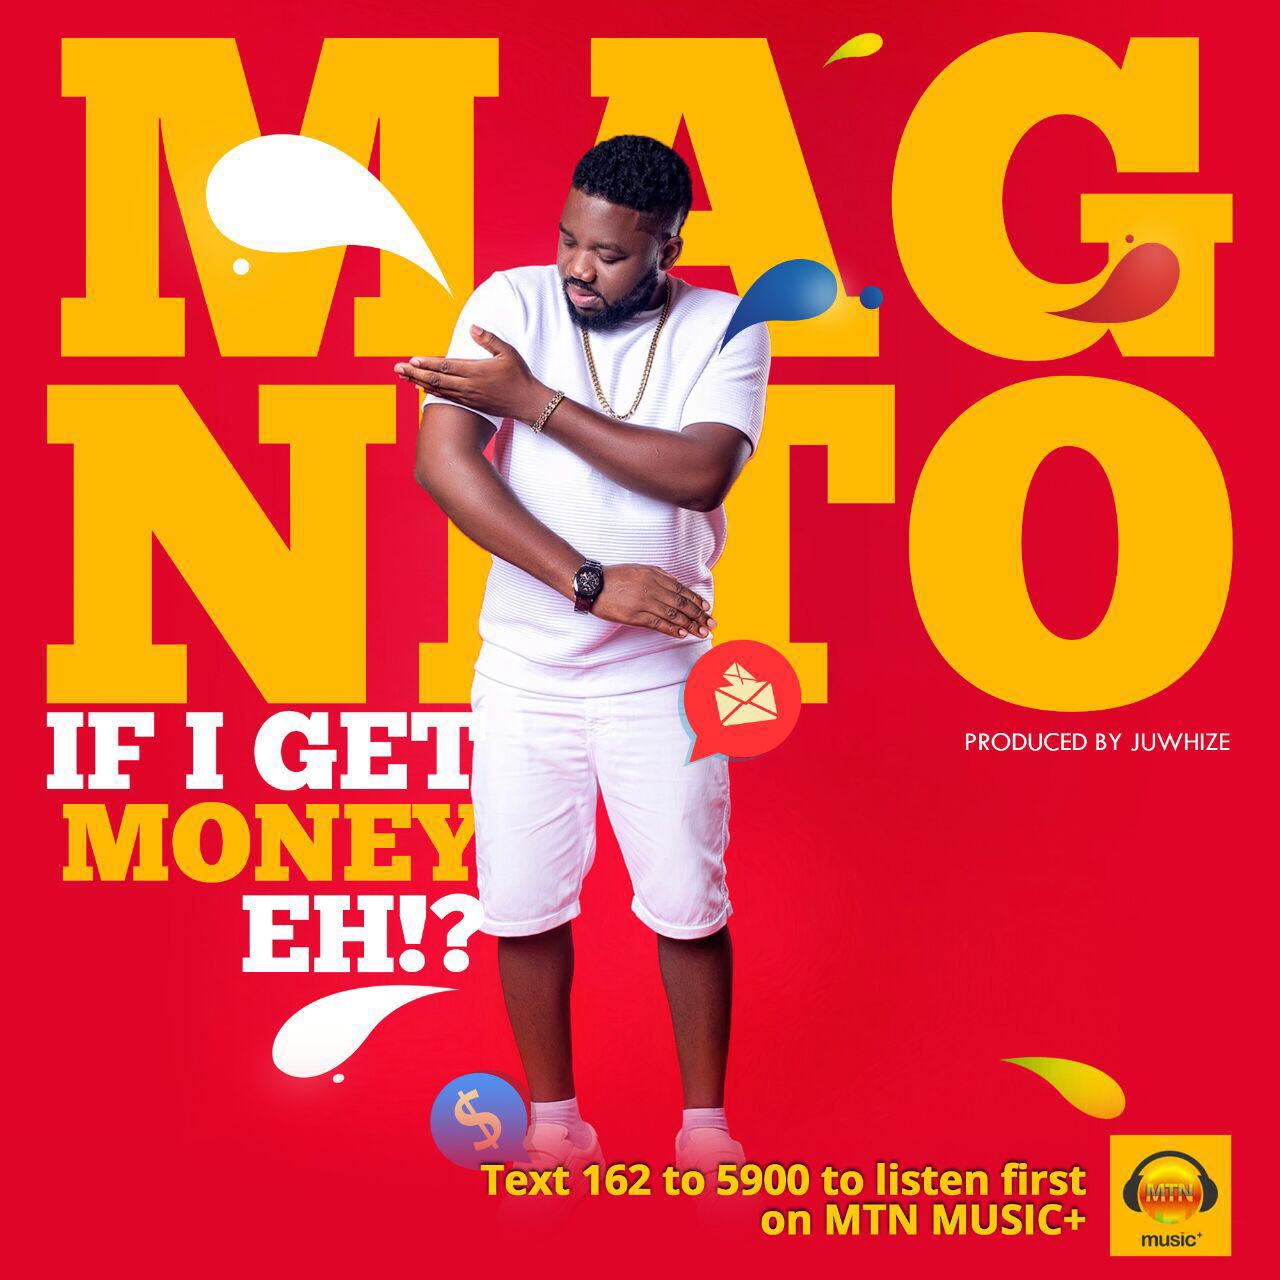 Magnito - If I Get Money Eh